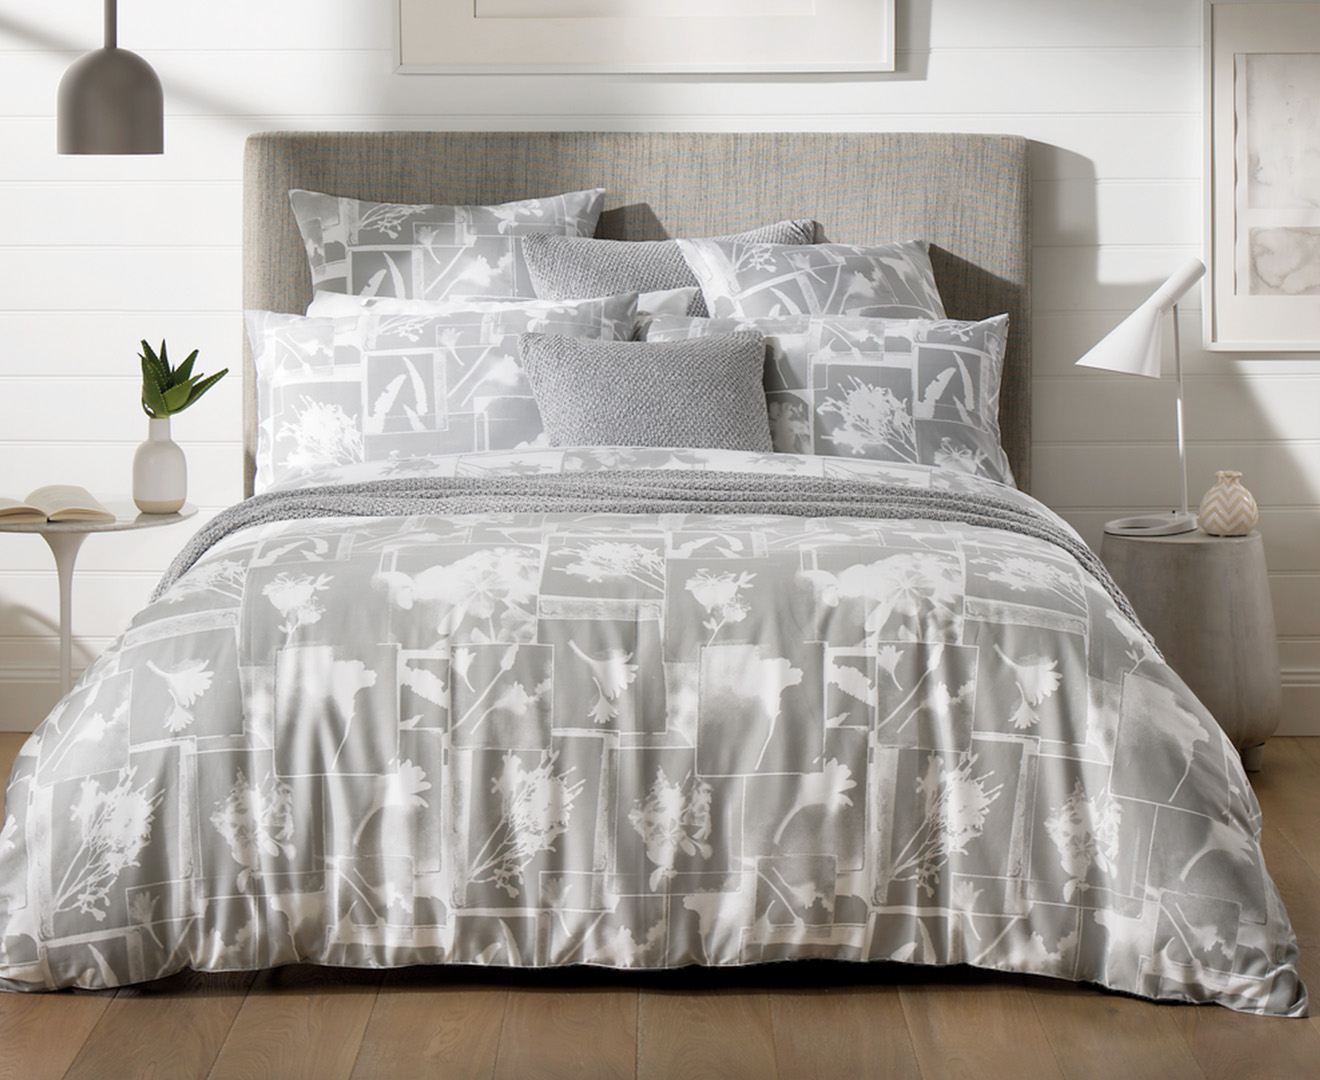 Sheridan Impressions Queen Bed Quilt Cover Set - Fog